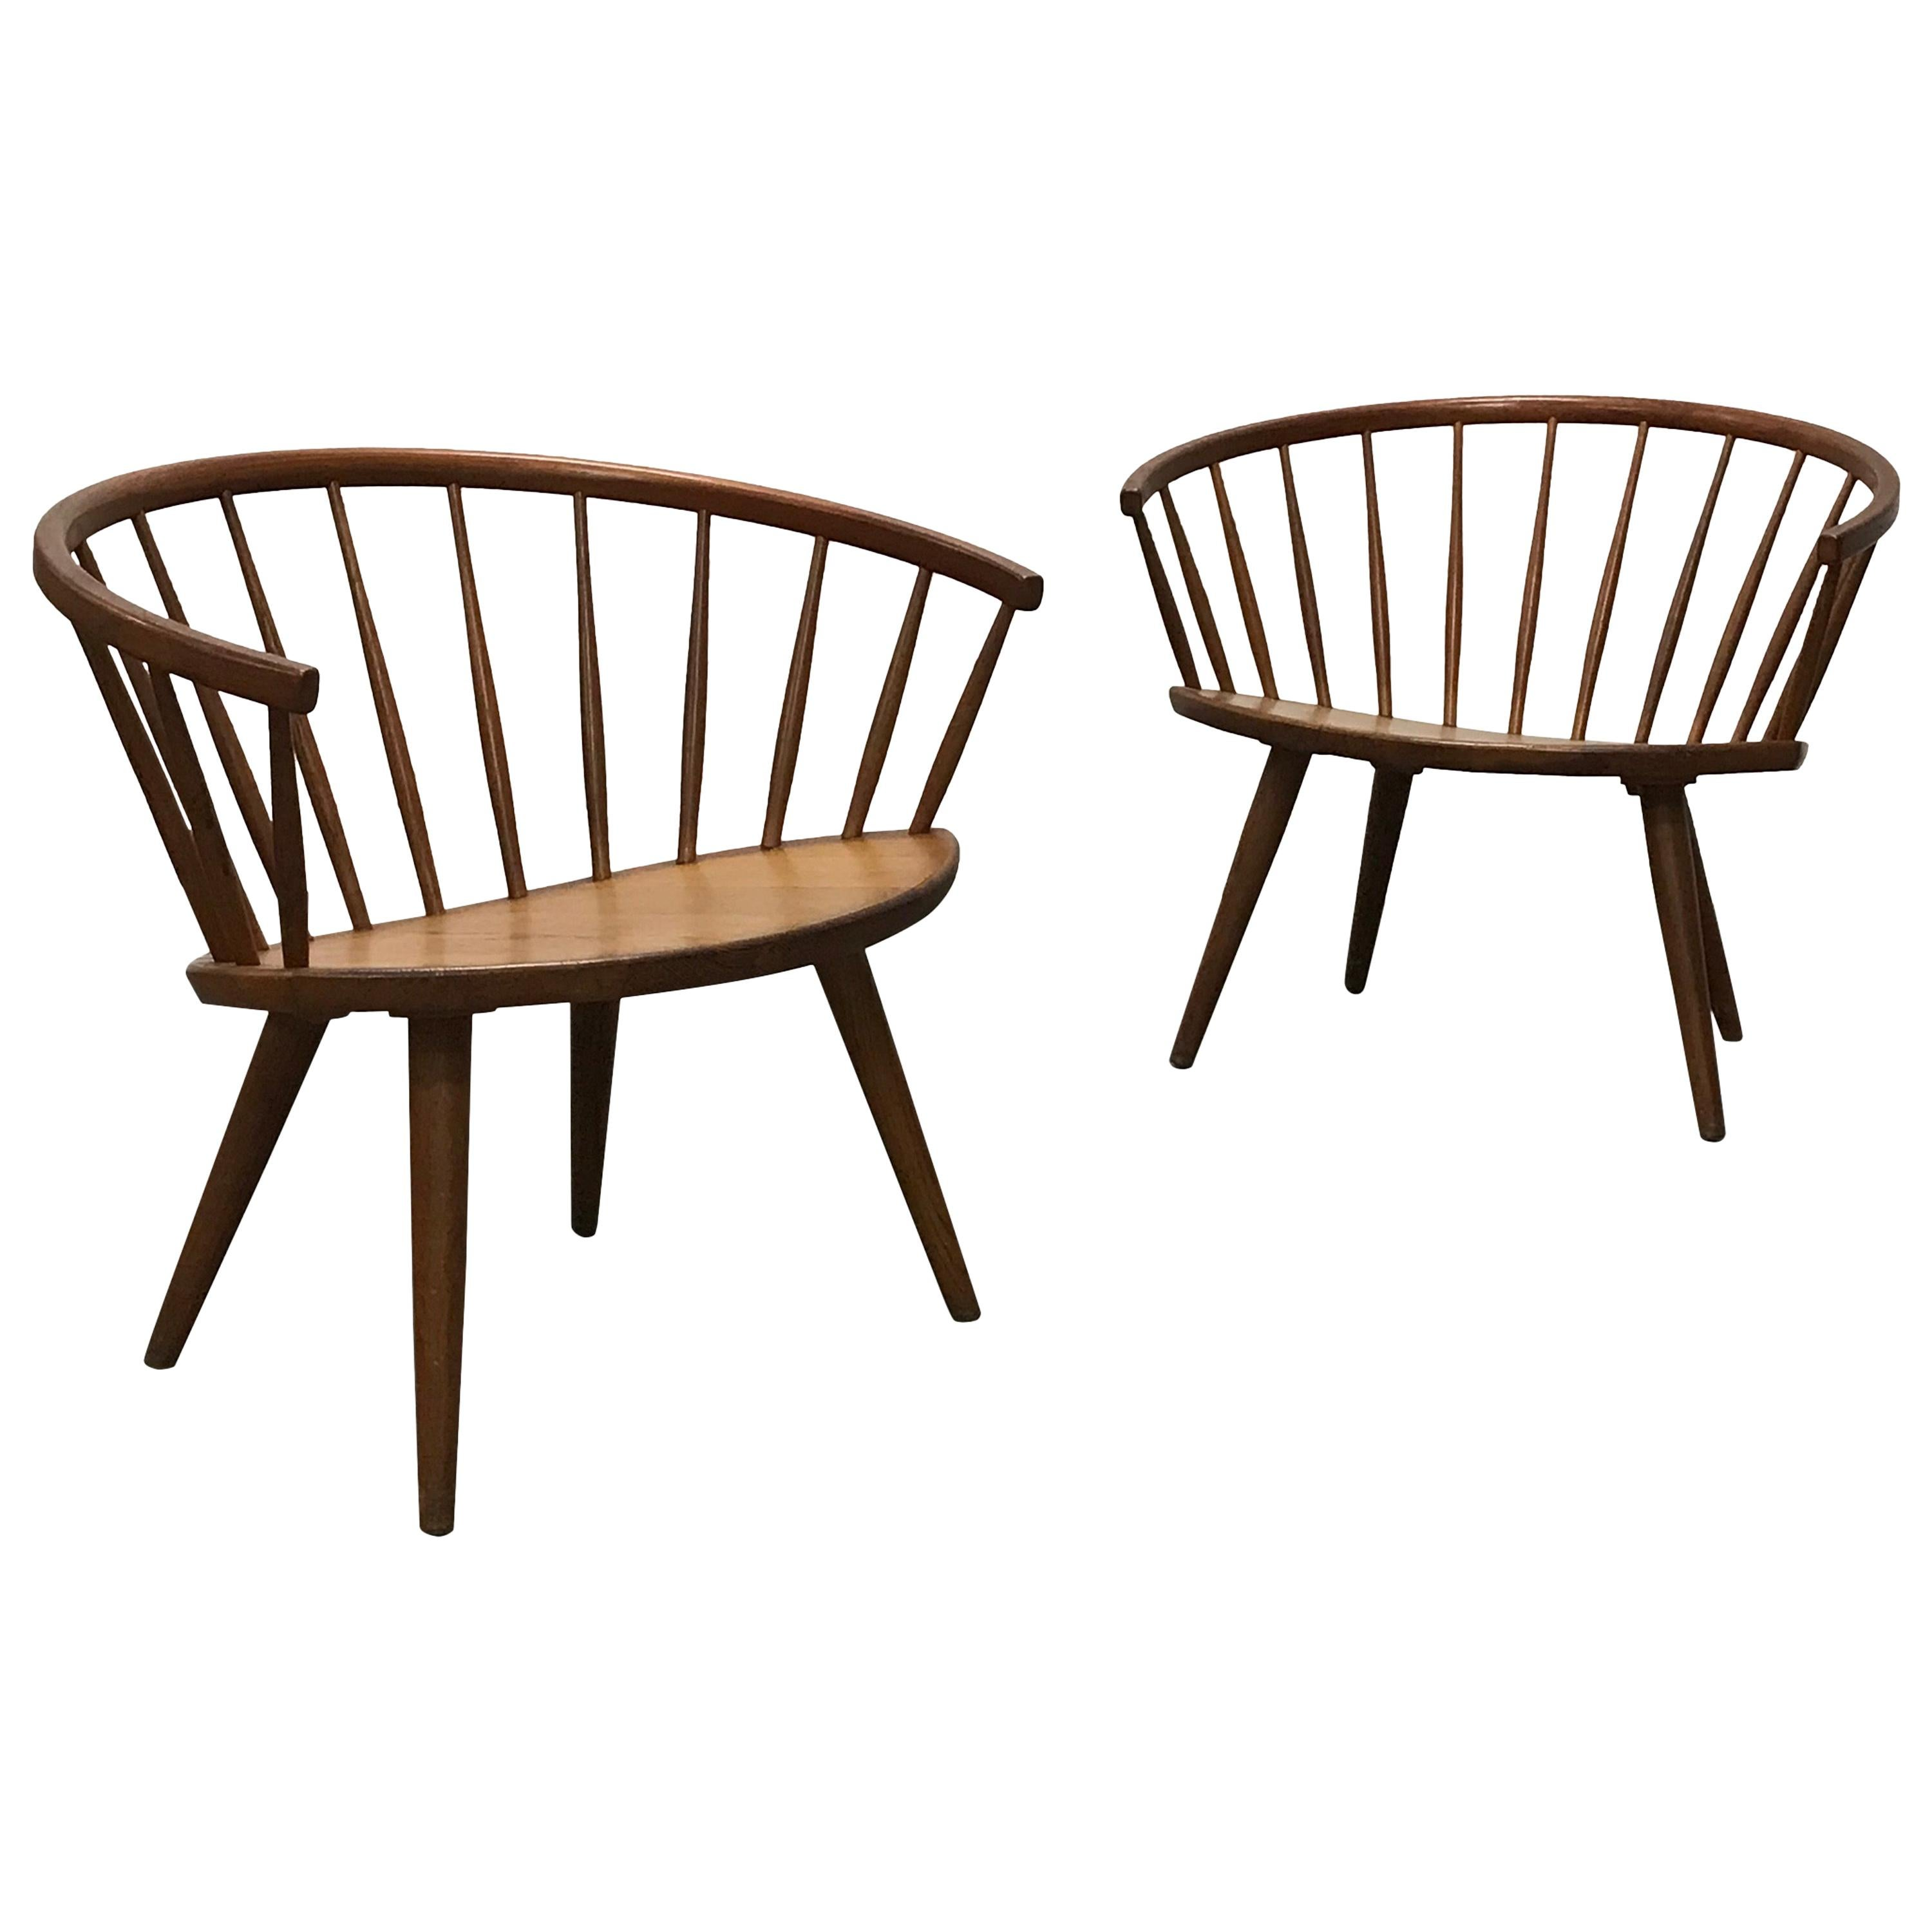 """Rare Pair of Spindle Back """"Arka"""" Lounge Chairs by Yngve Ekström"""